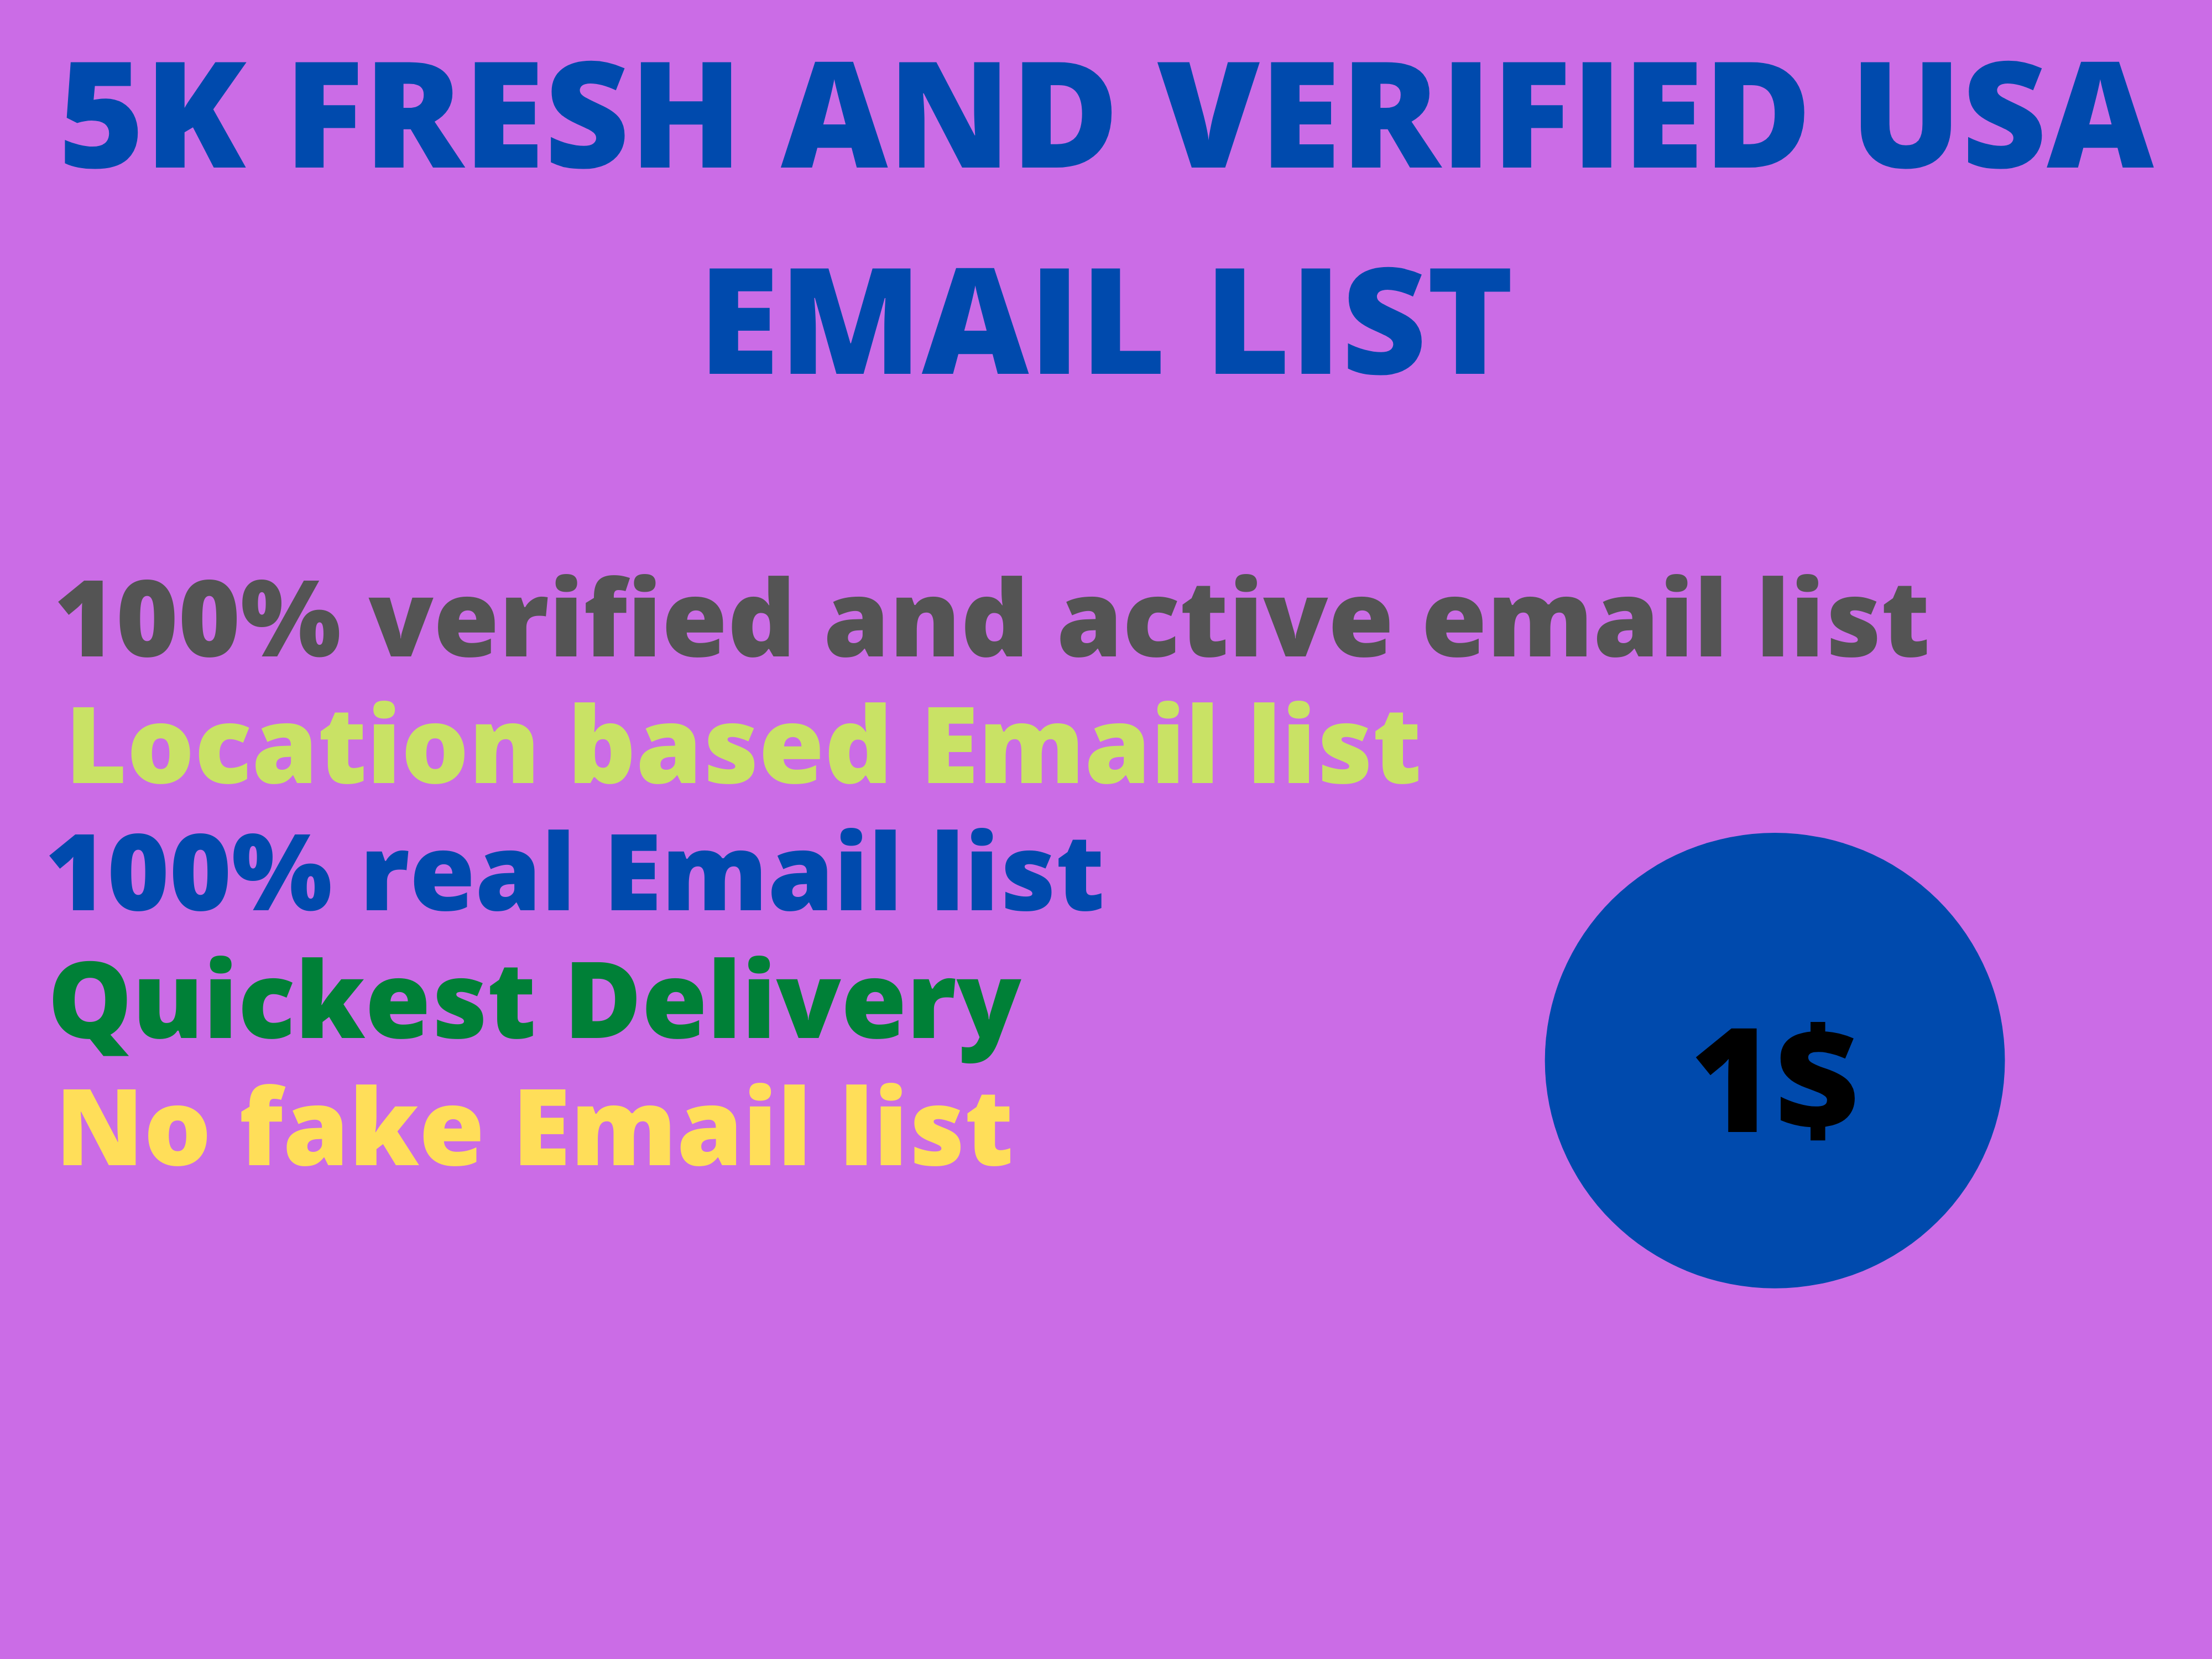 I will present you 5K Fresh and Verified USA Email List